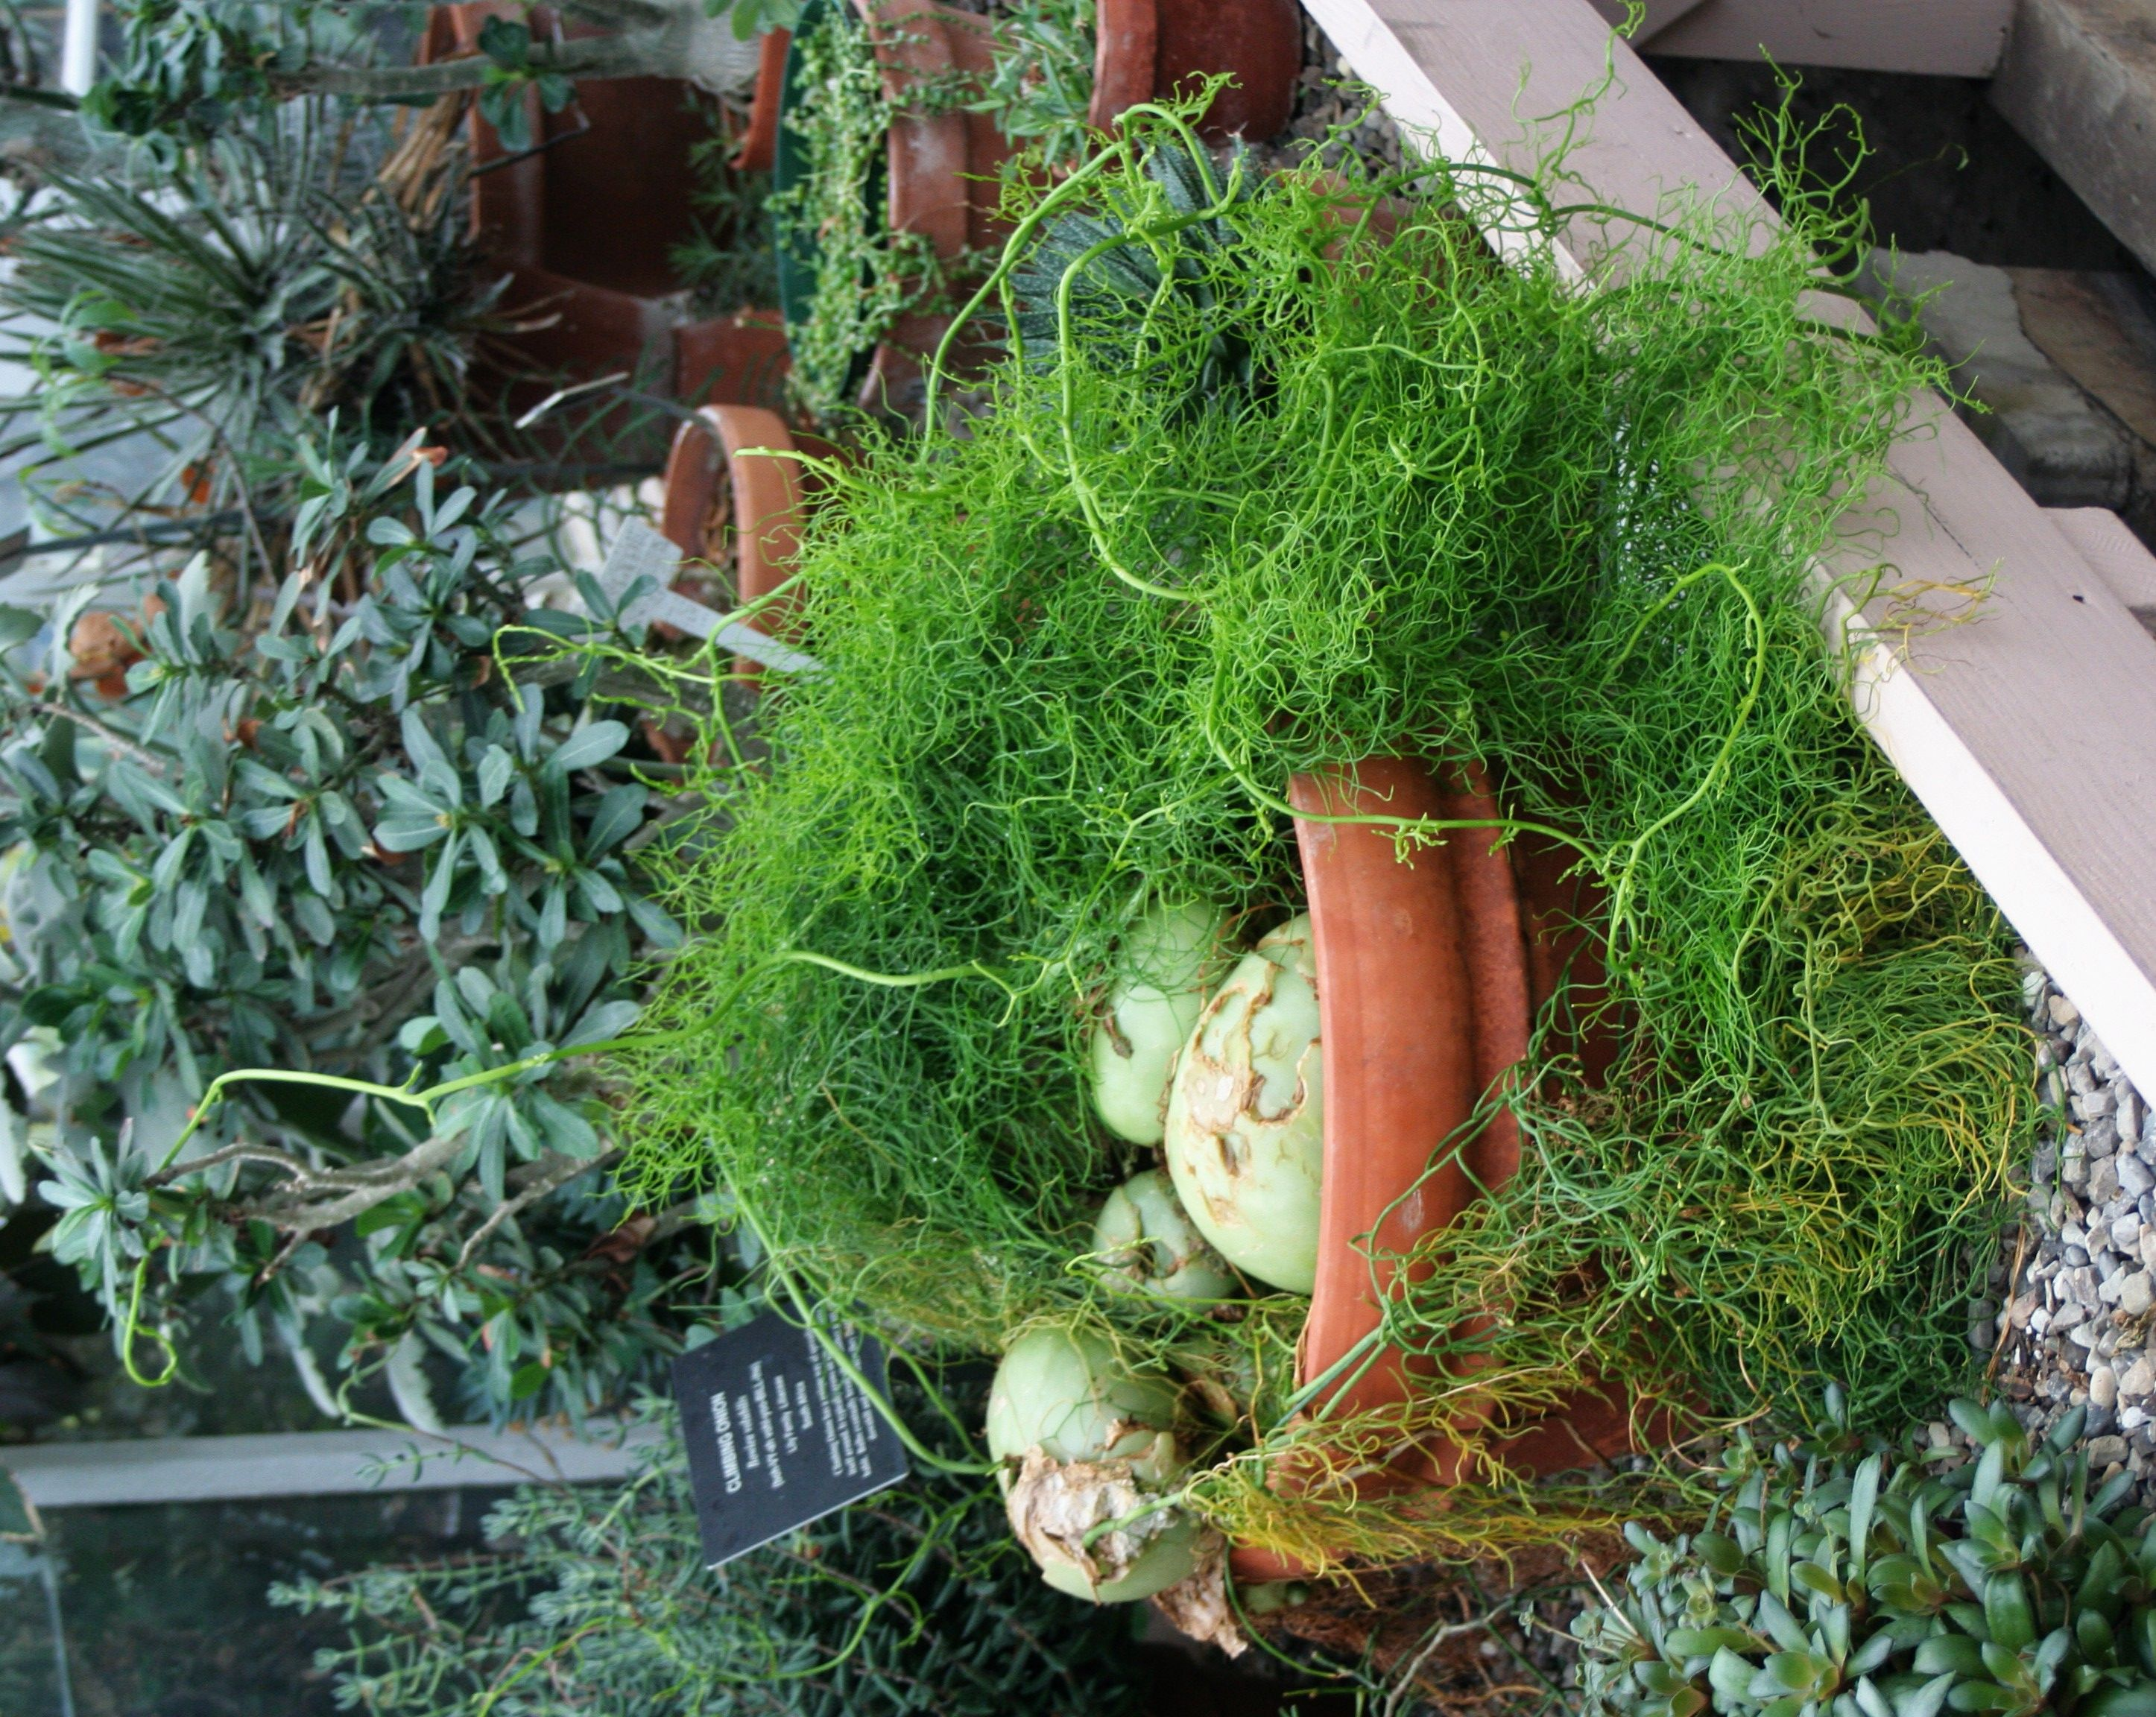 Interior designs medium size vertically growing onions growing onions - The Climbing Onion Plant Is Not Related To Onions Or Other Alliums But Is More Closely Aligned With Lilies Growing Climbing Onion As A Houseplant Will